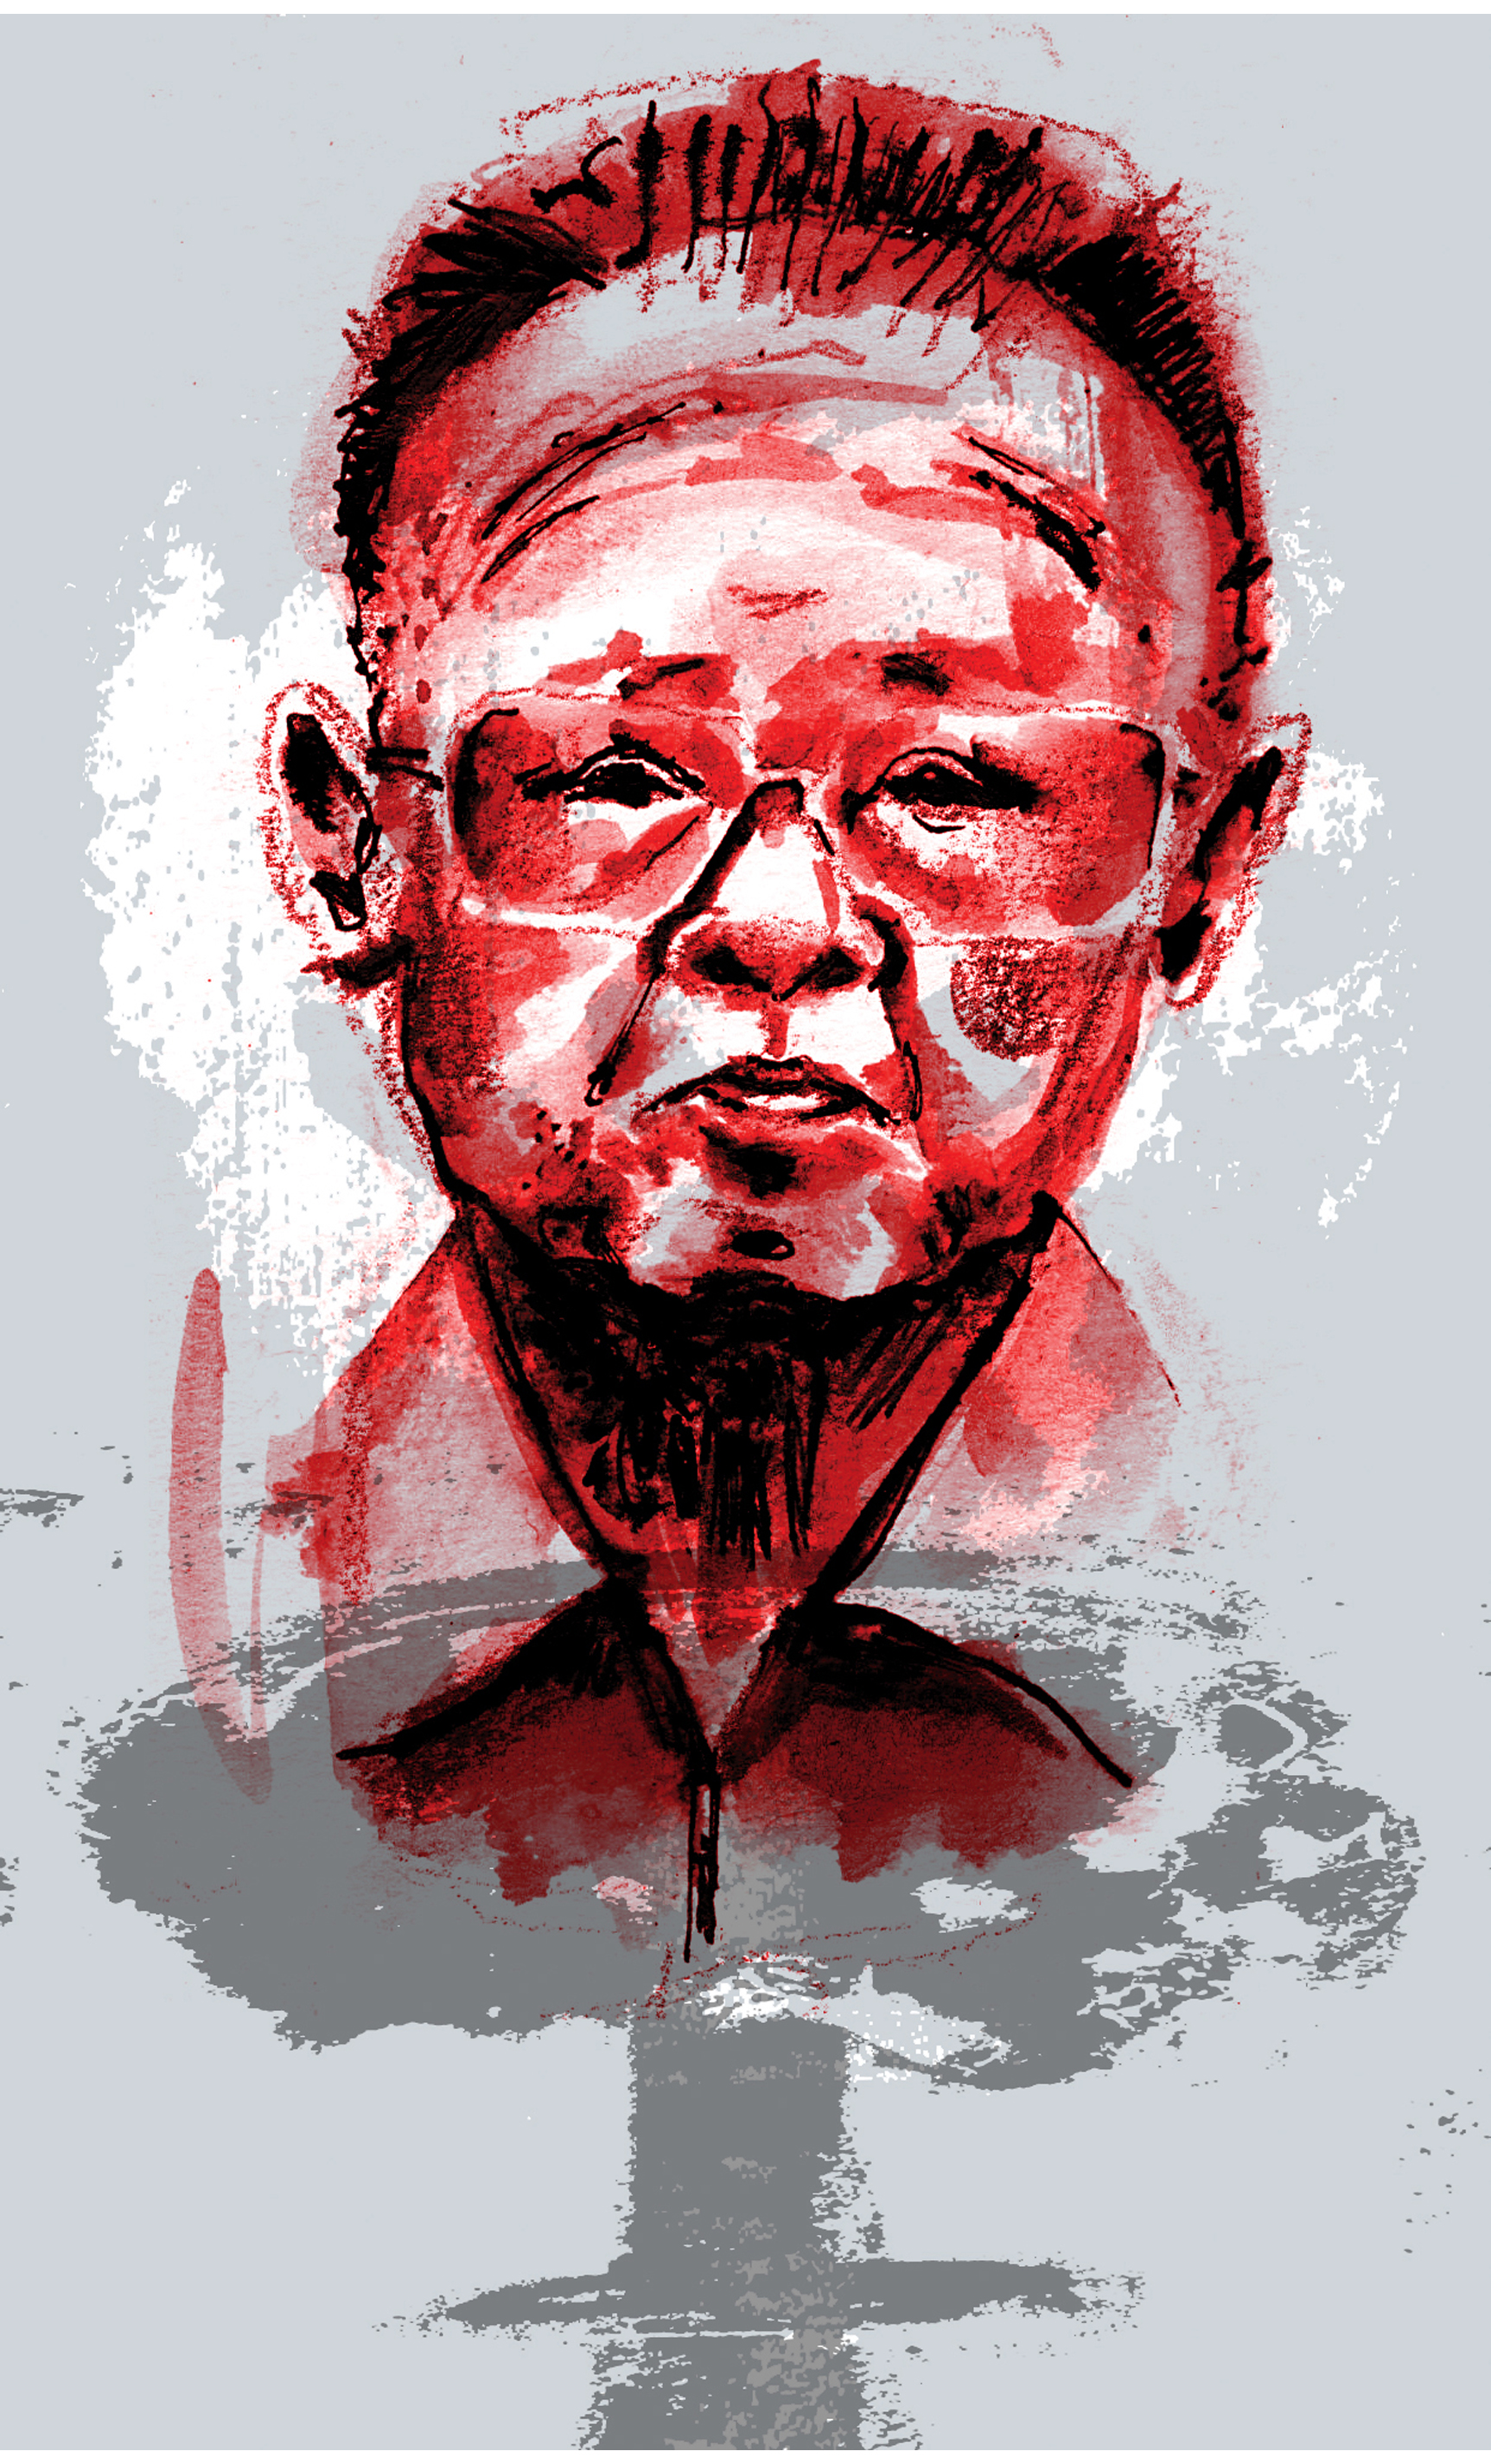 illustration of the late Korean leader Kim Jong Il